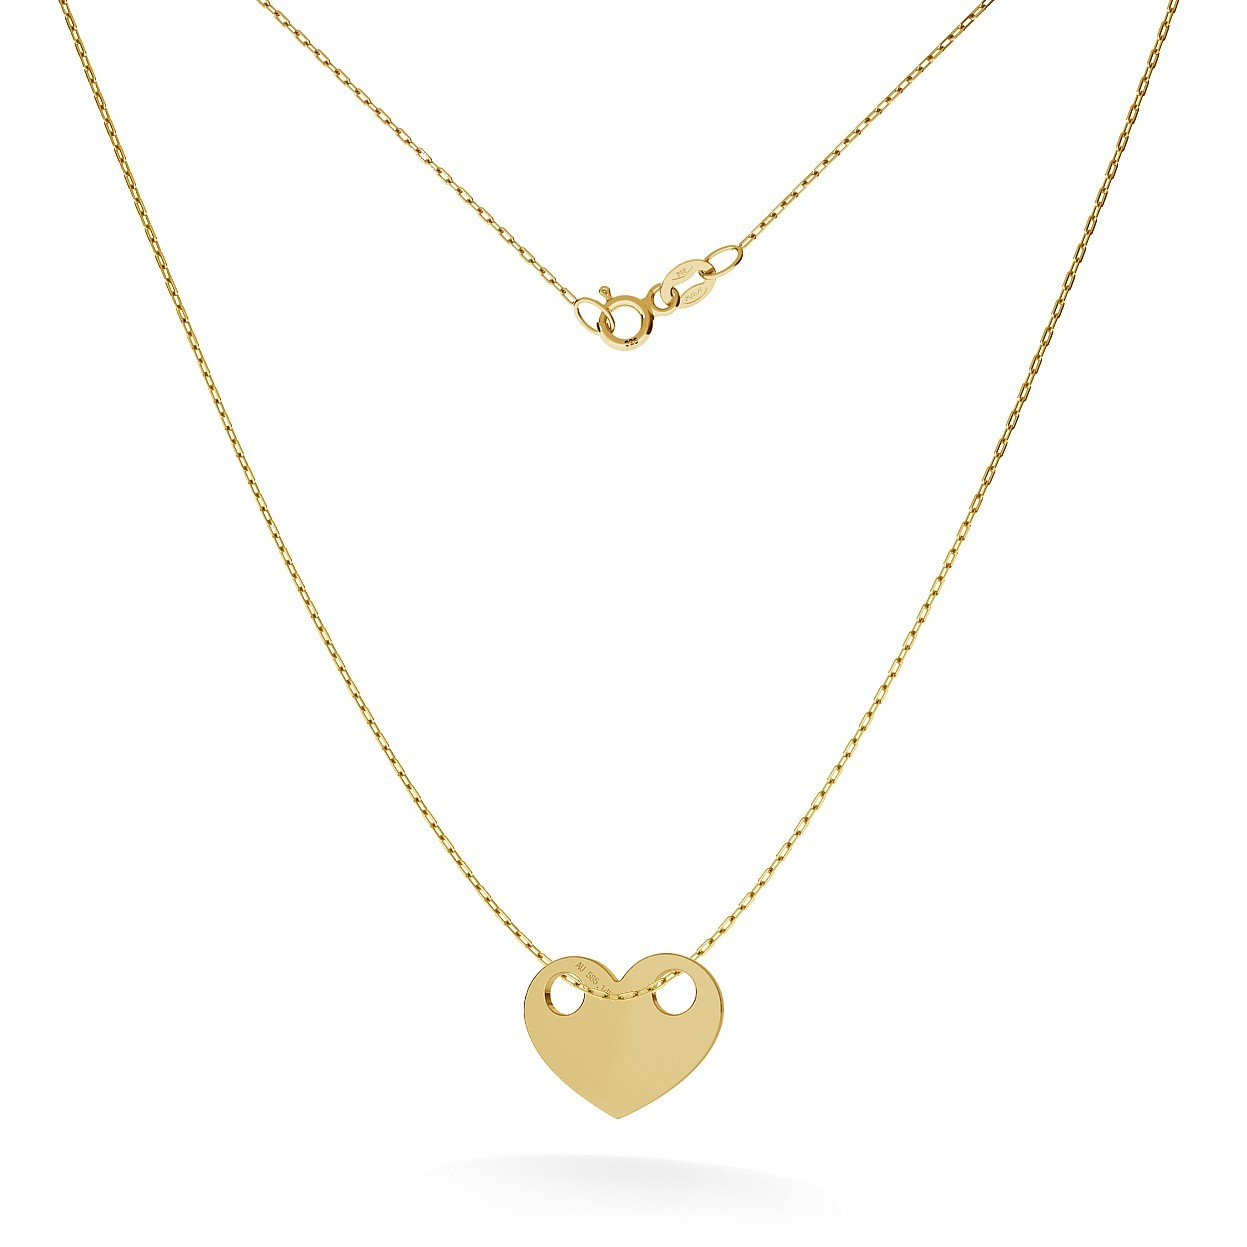 GOLD HEART NECKLACE 14K, MODEL 3